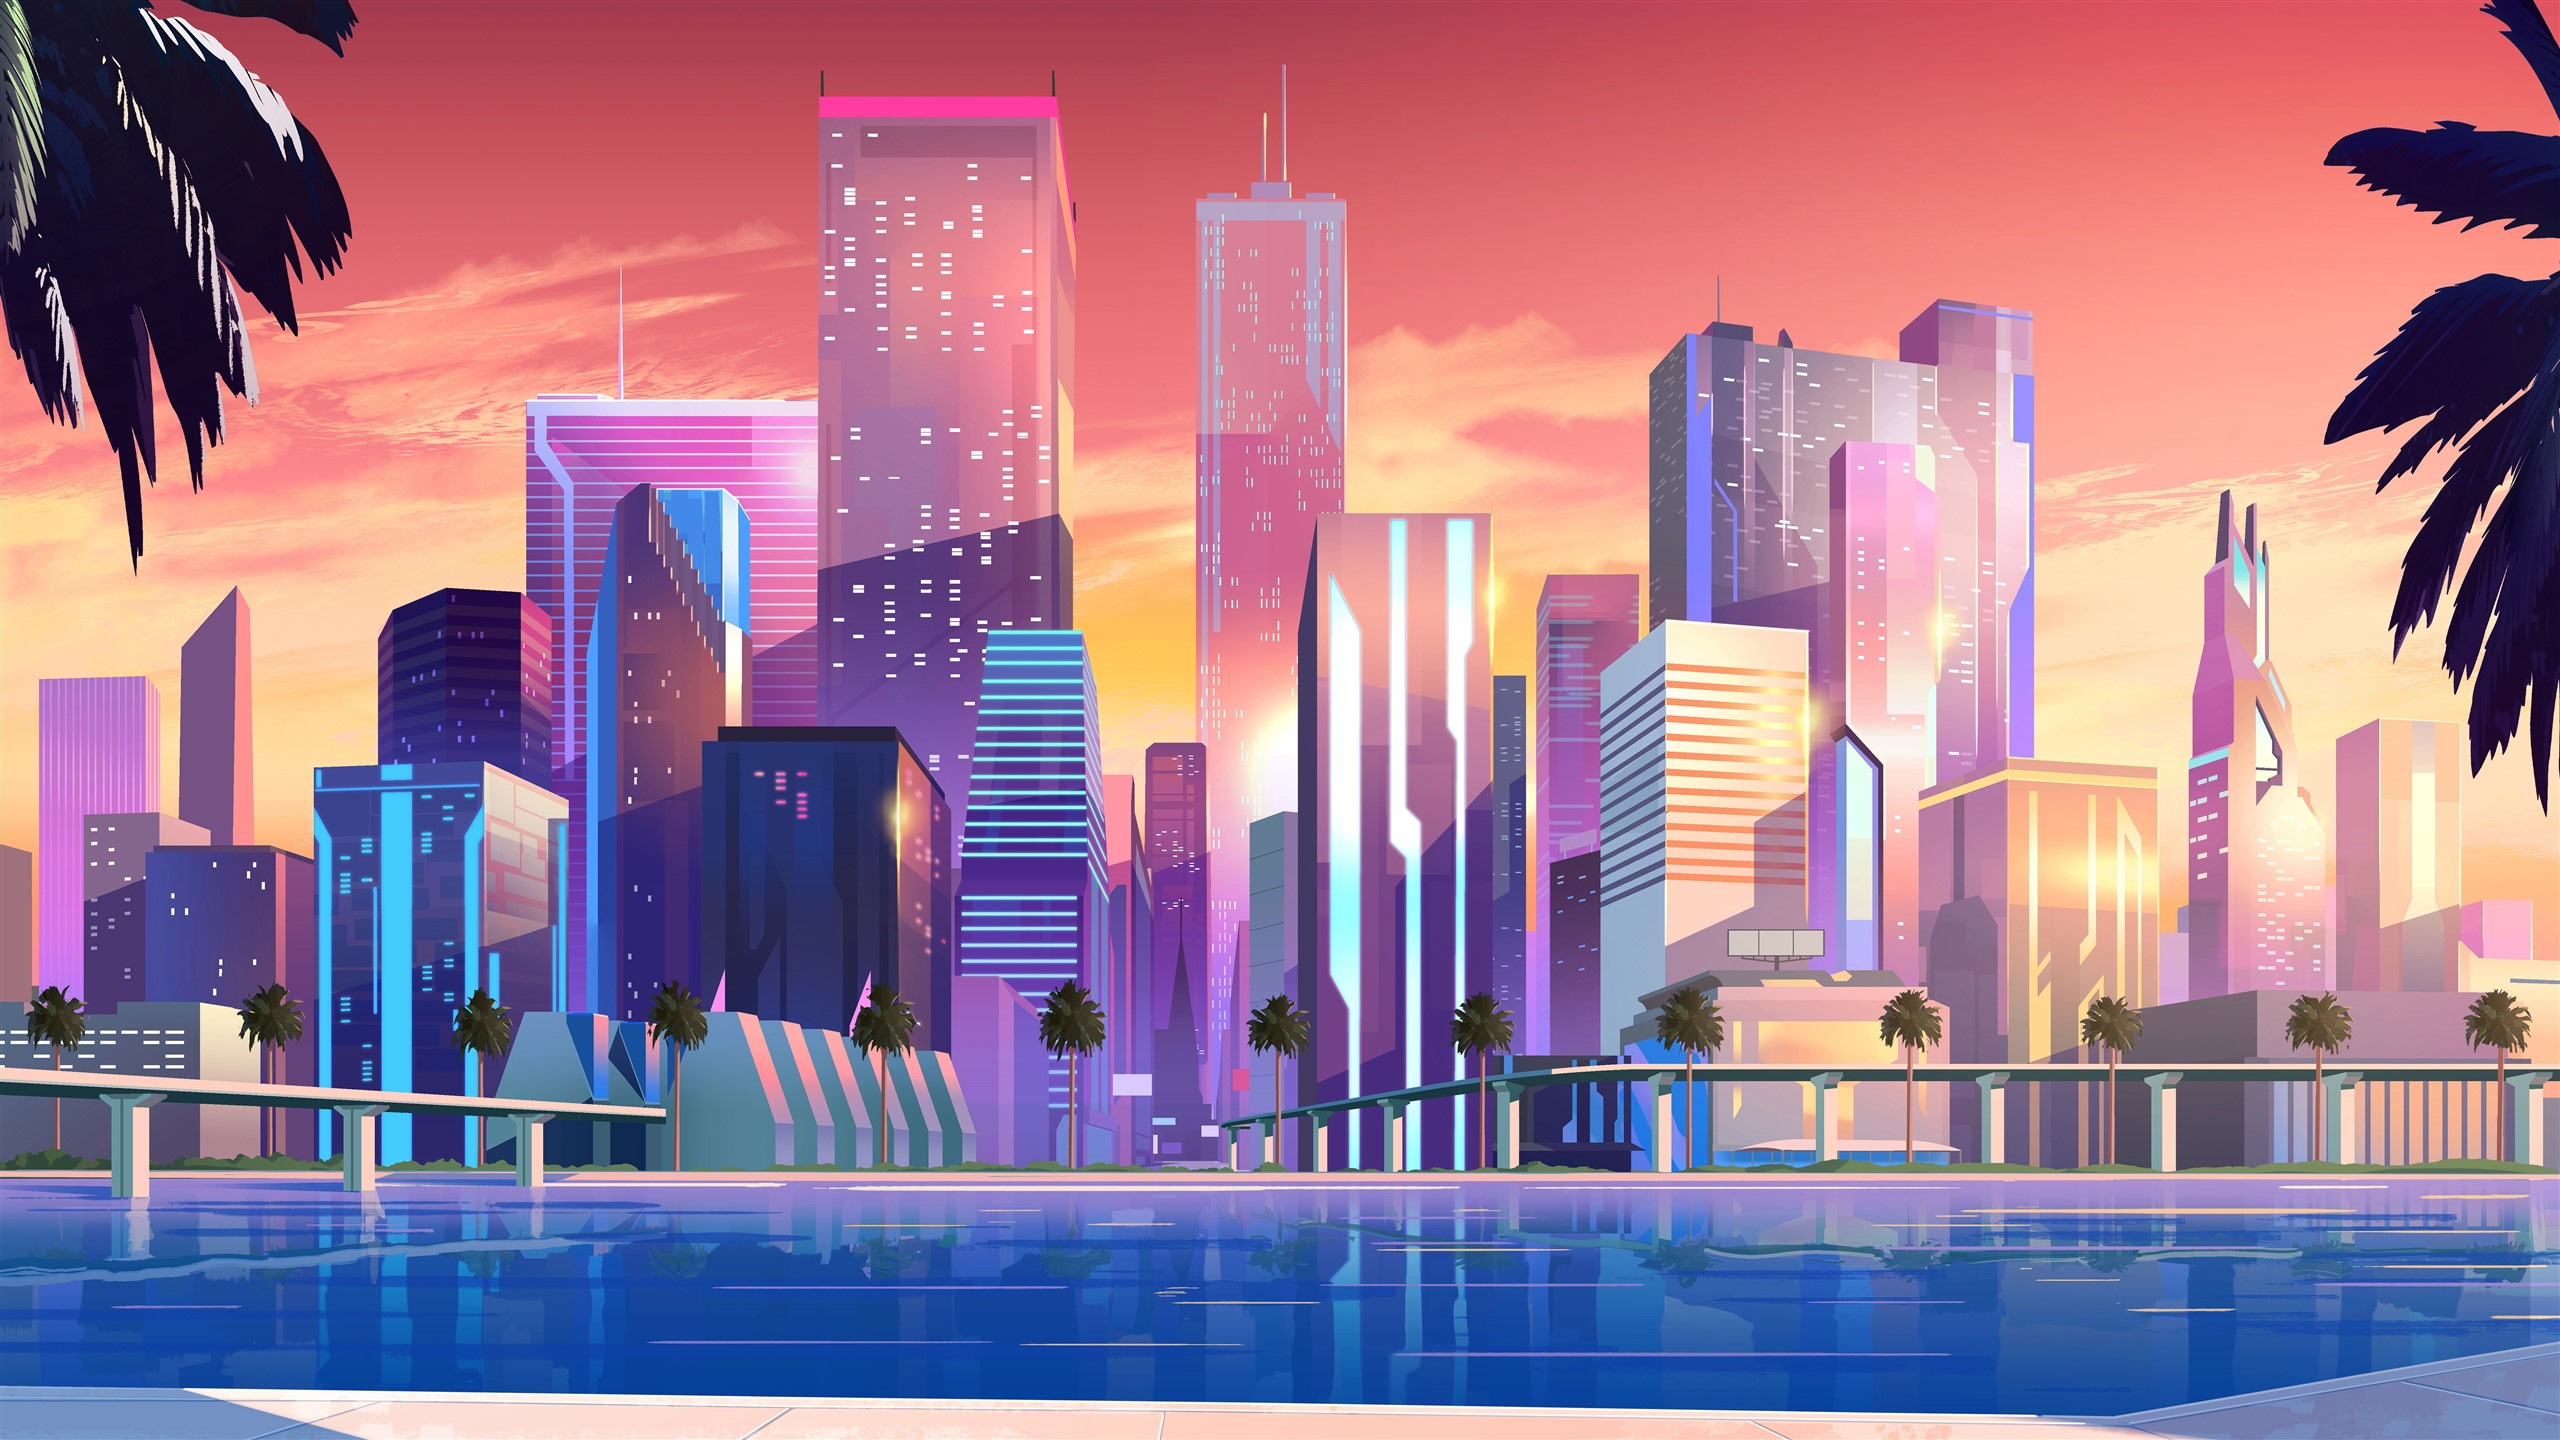 Wallpaper City Skyscrapers Vector Picture 7680x4320 Uhd 8k